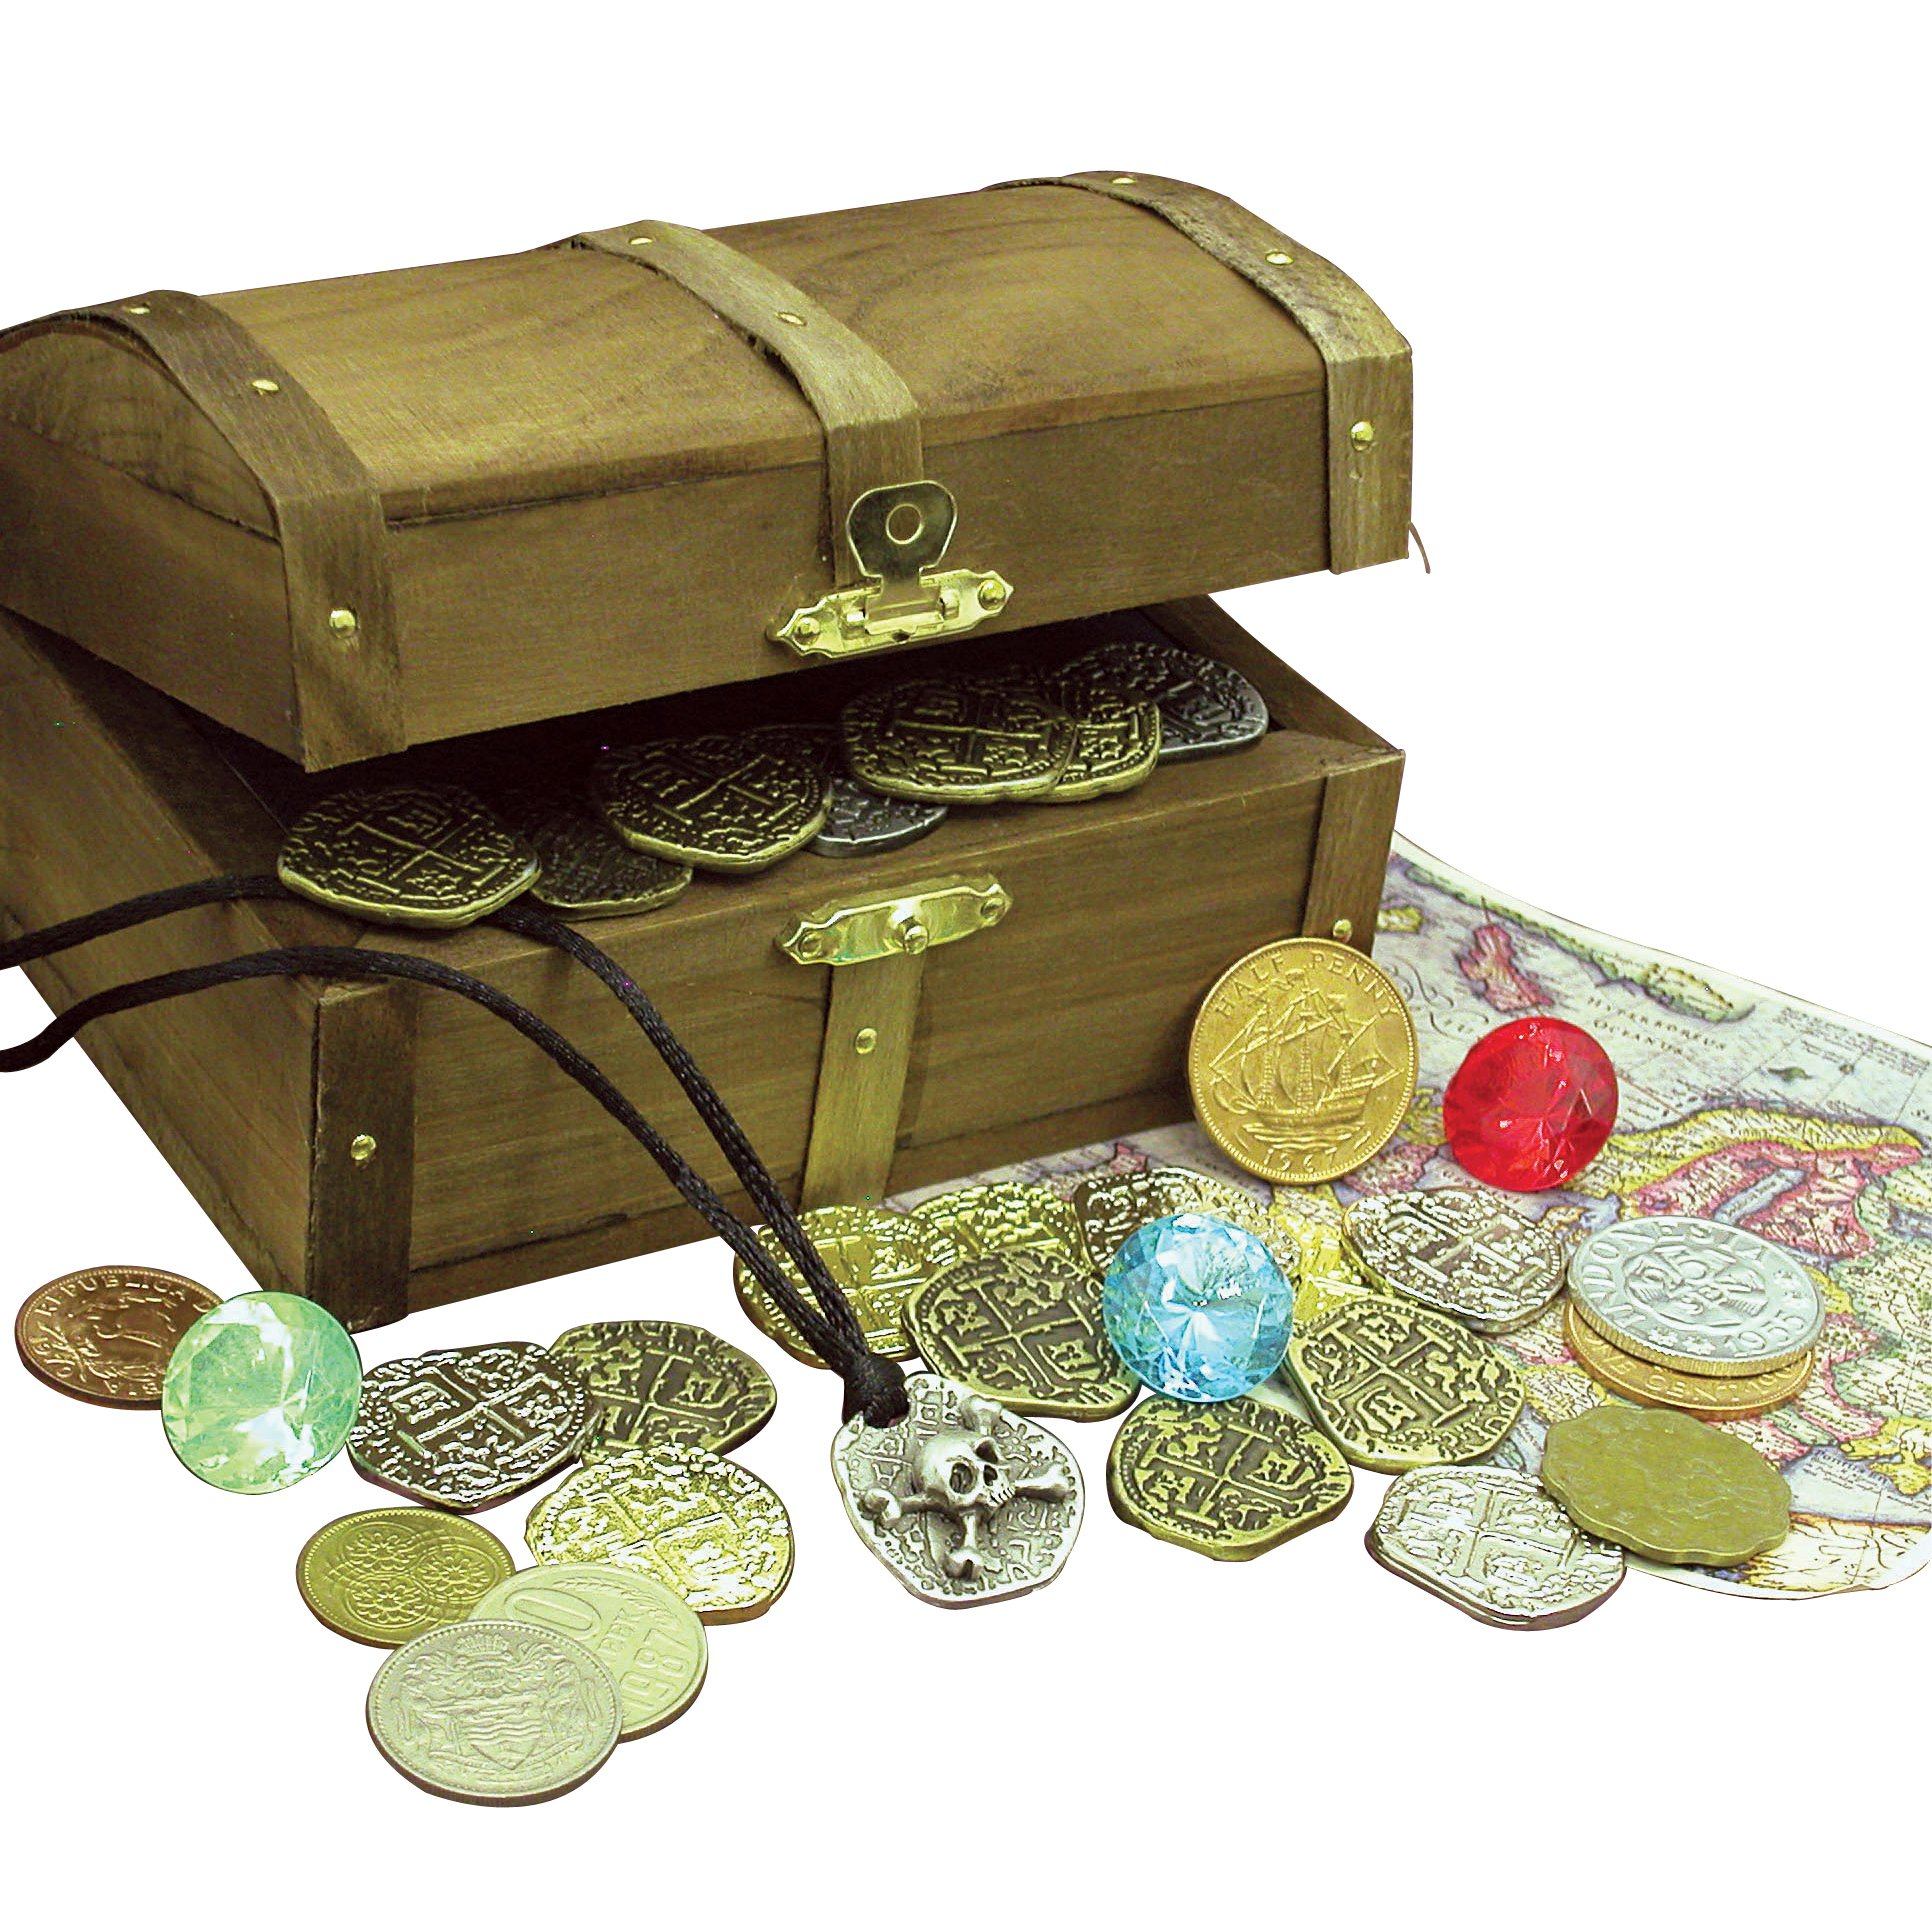 American Coin Treasures Kid's Treasure Chest with Replica Pirate Coins/Foreign Coins/Gems/Necklace Coin Jewelry by American Coin Treasures